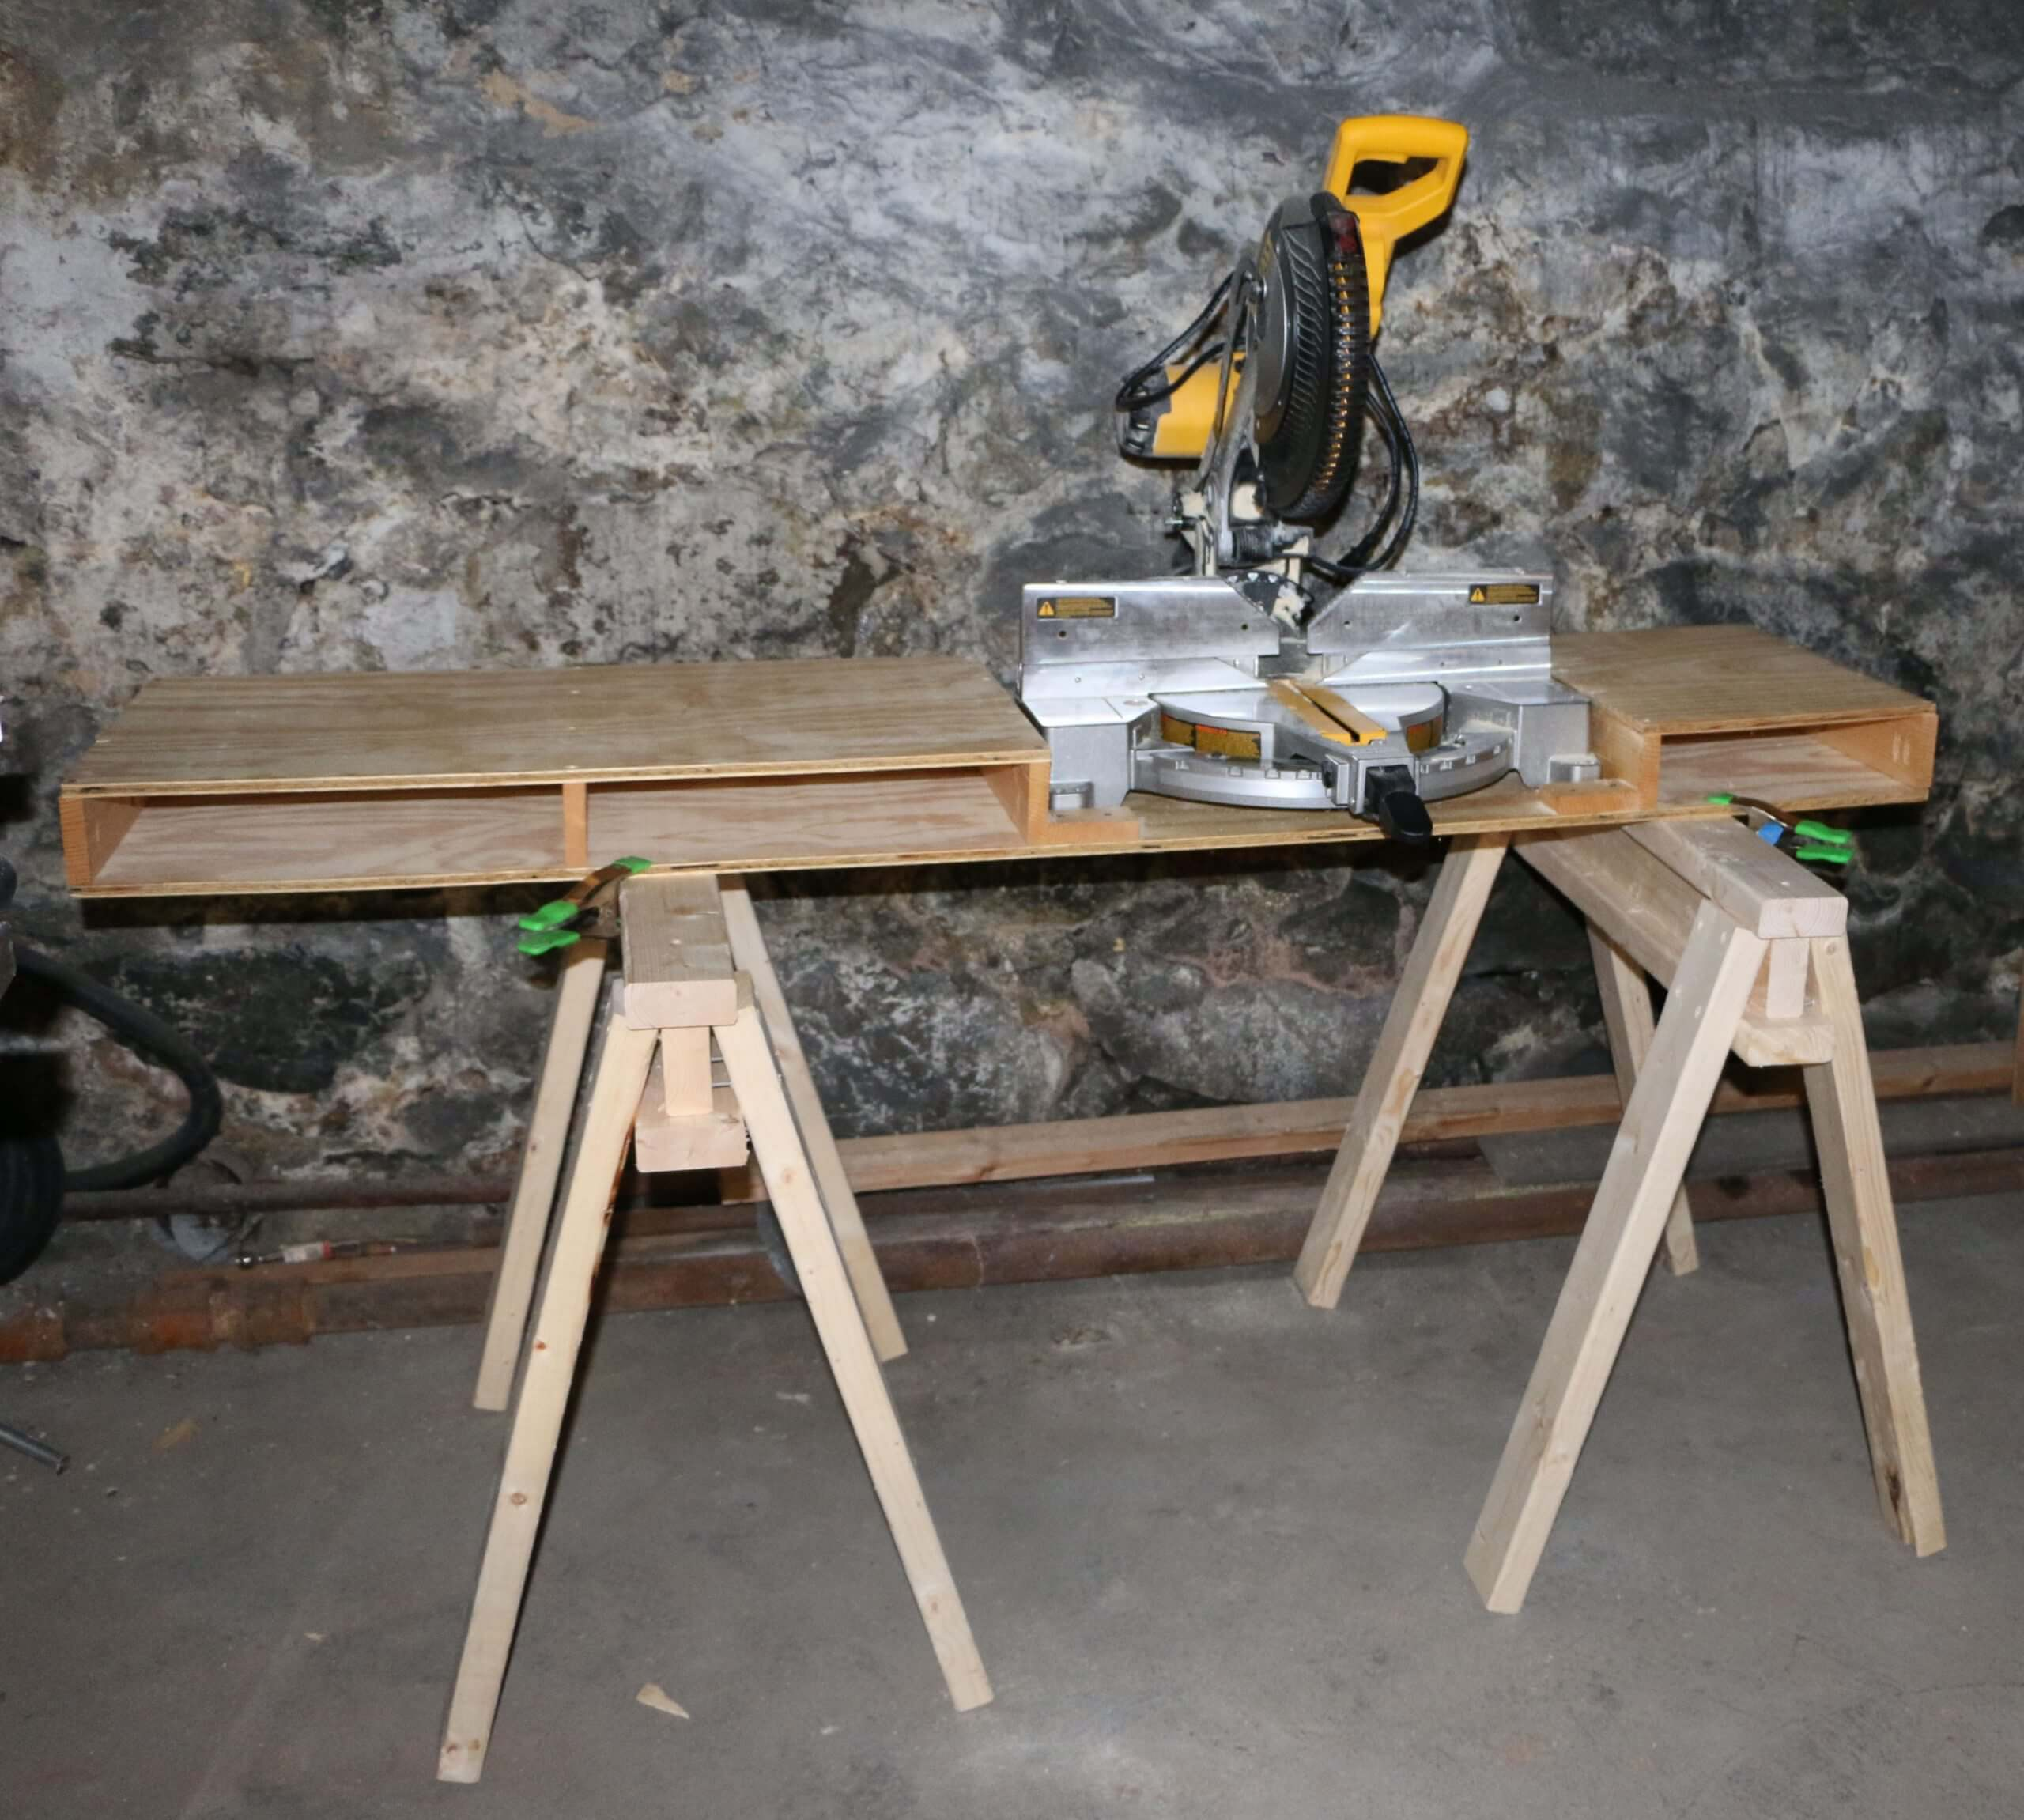 How To Make A Portable Miter Saw Table Jeff S Diy Projects